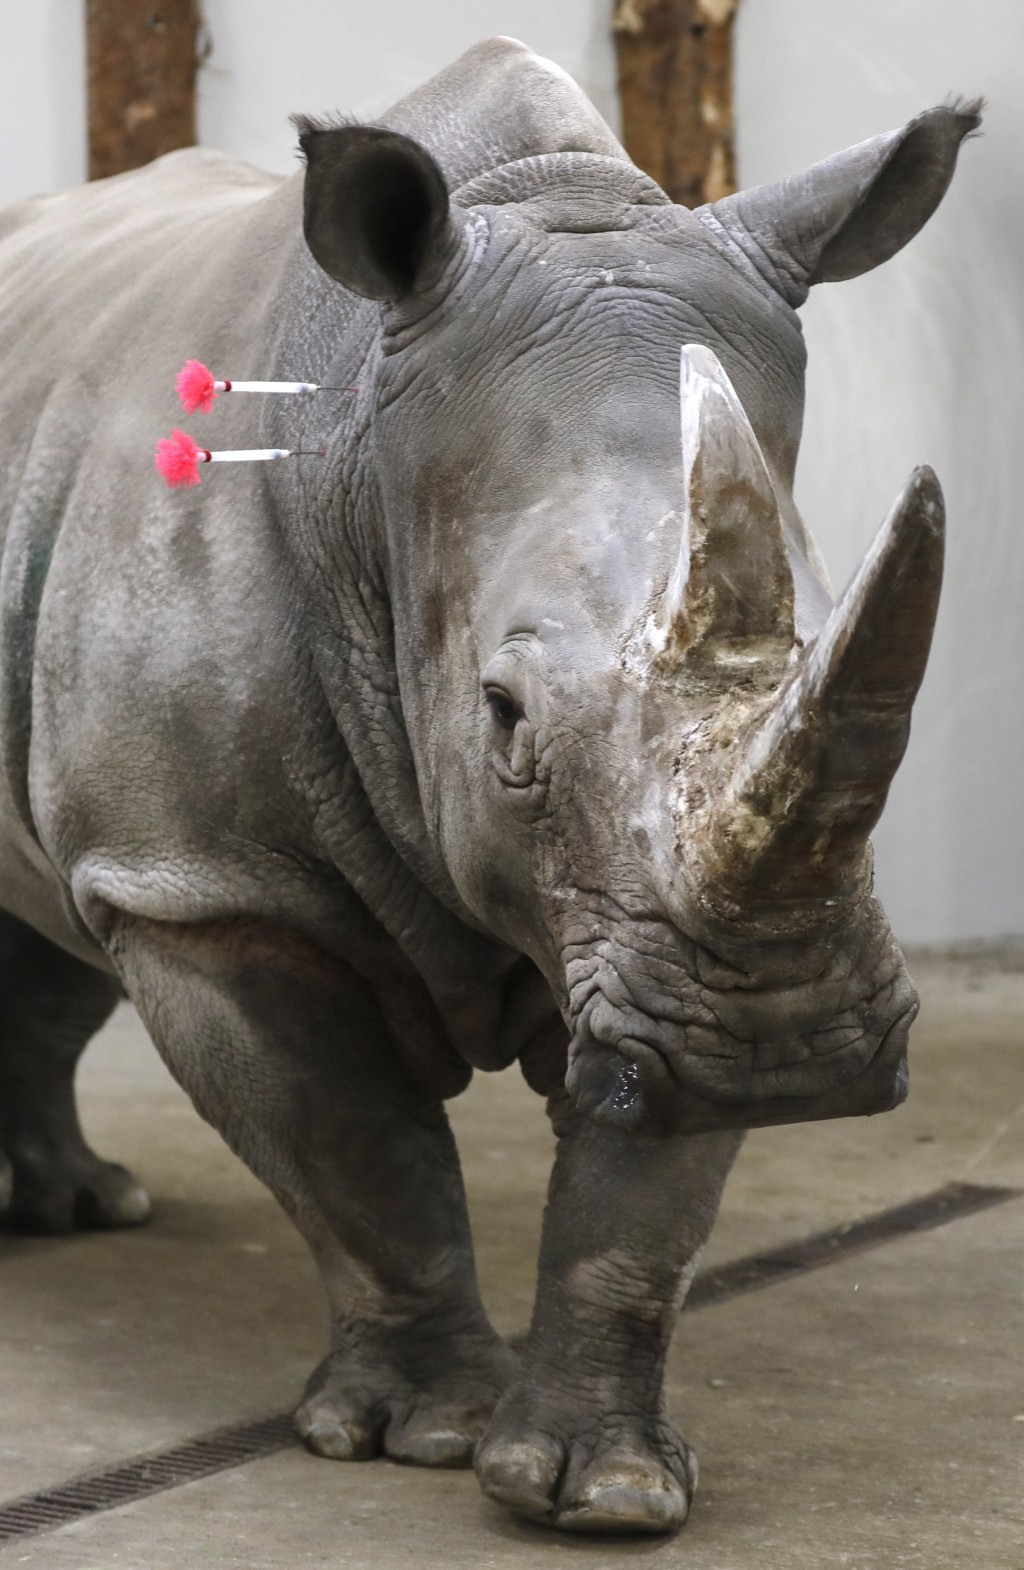 Female southern white rhino, 17-year-old Hope, is shot with tranquilizing darts, so a team of experts can harvest its eggs, at a zoo park in Chorzow, ...